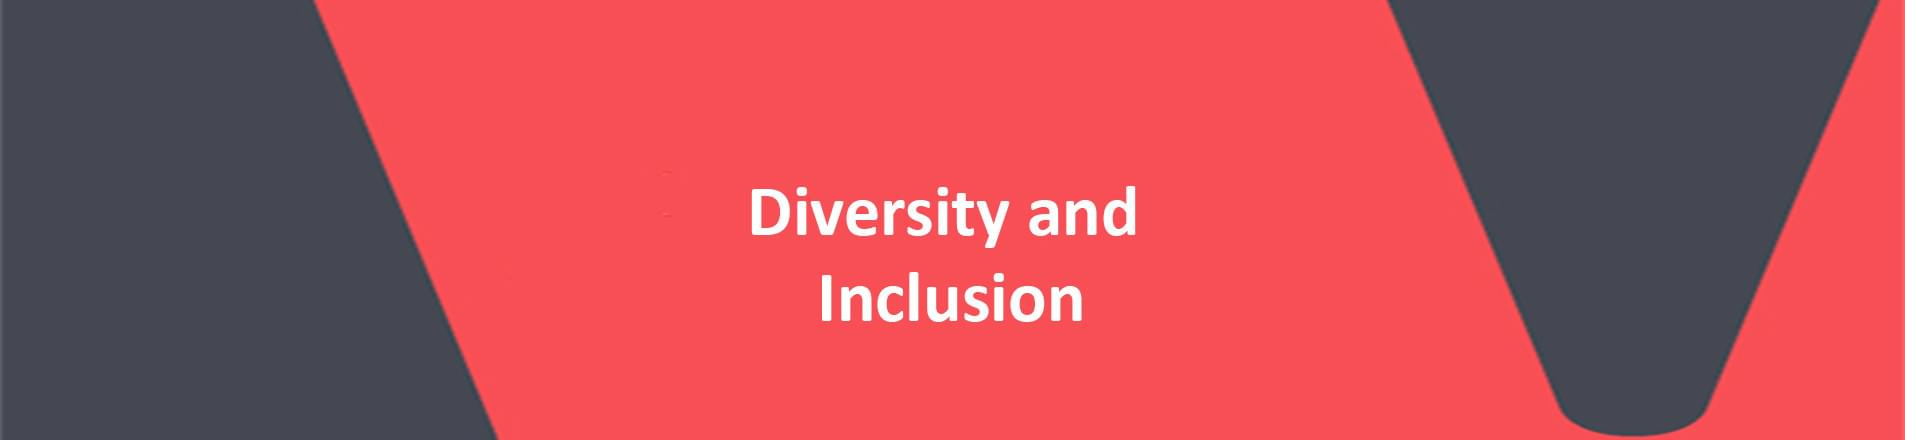 The words Diversity and Inclusion in white on a red VERCIDA branded background.